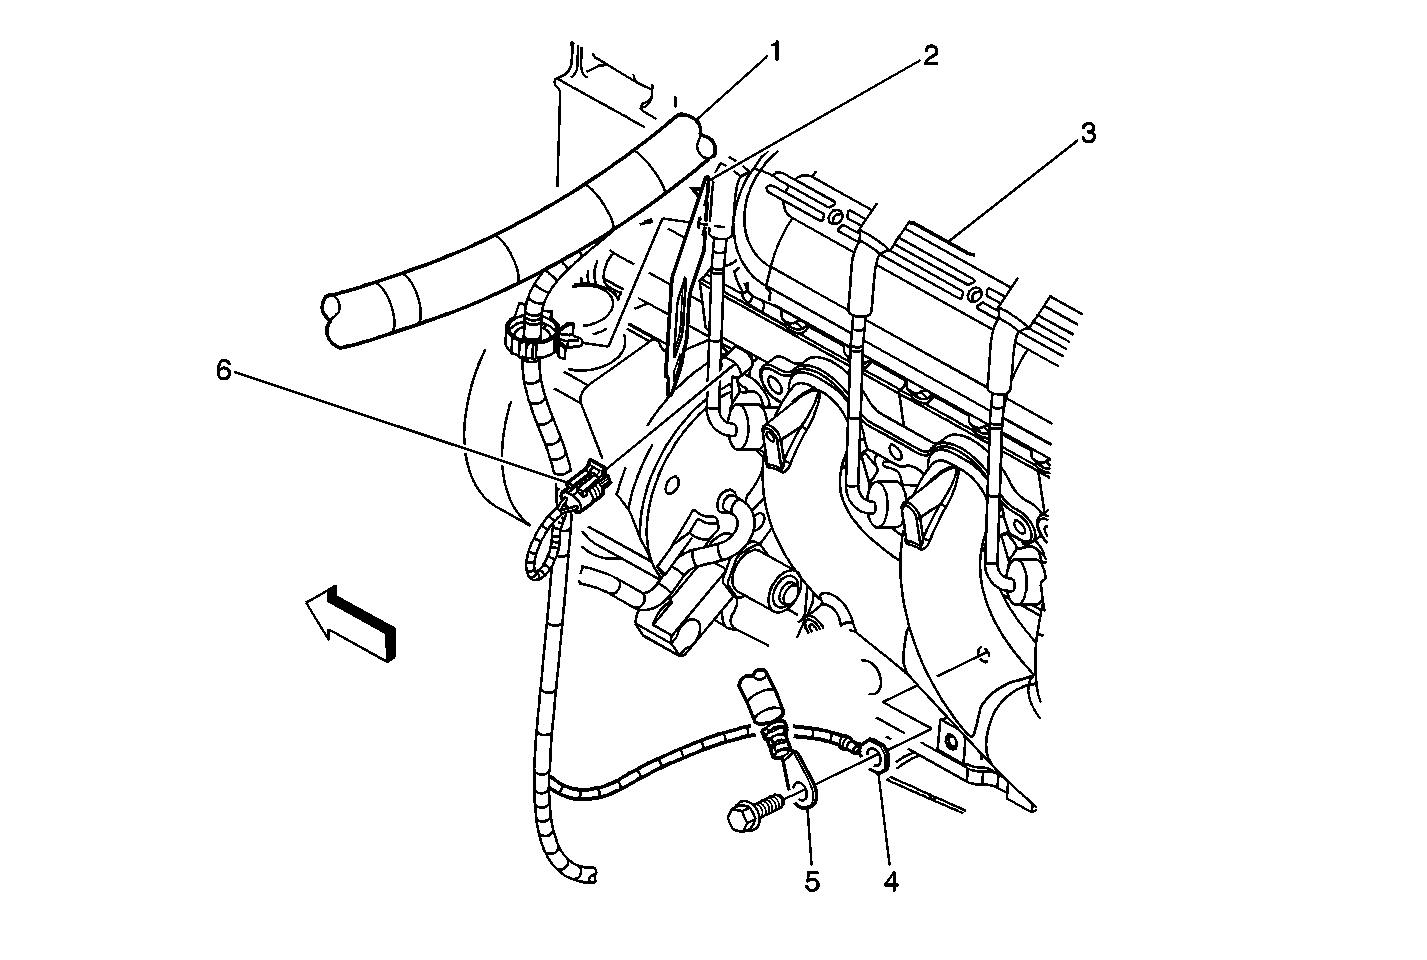 Lower Left Side Of The Engine Components